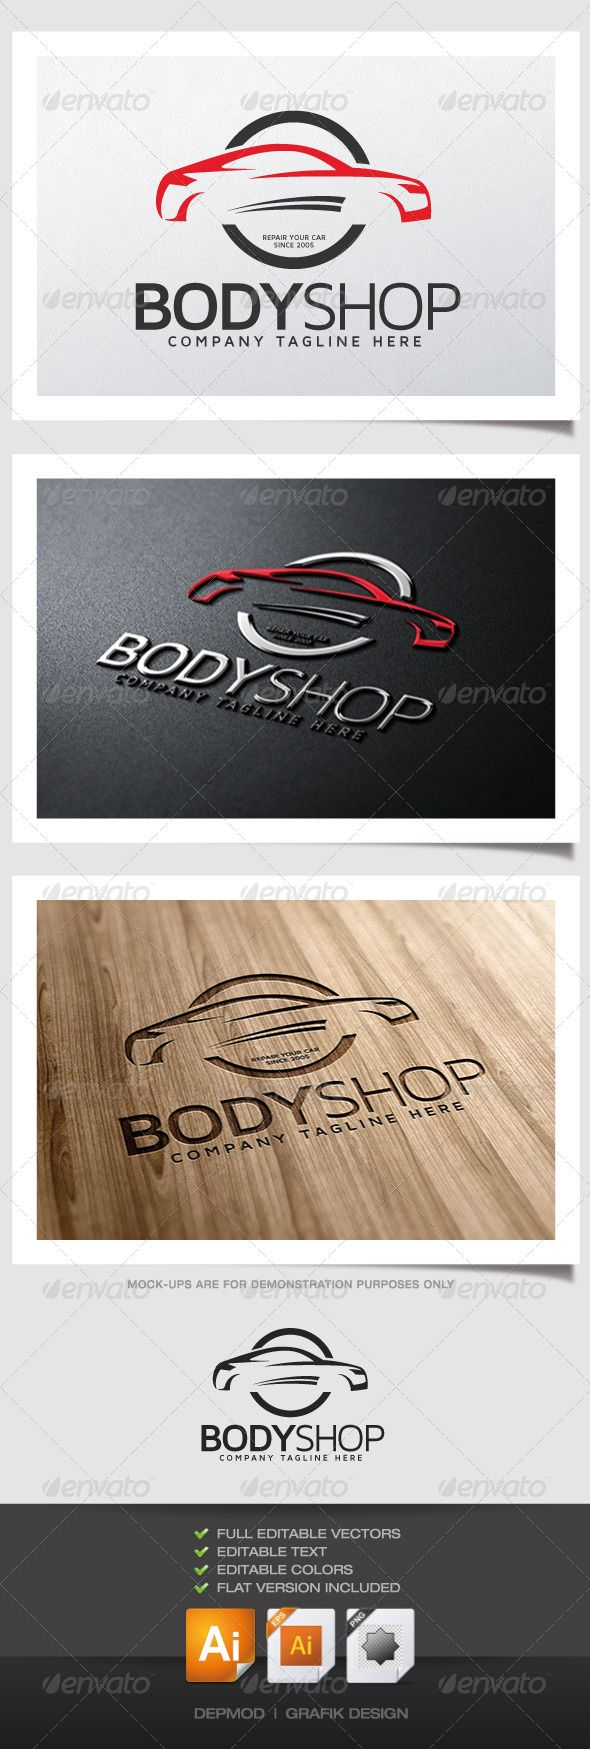 Body Shop Logo — Transparent PNG #clean #effective • Available here → https://graphicriver.net/item/body-shop-logo/5186362?ref=pxcr